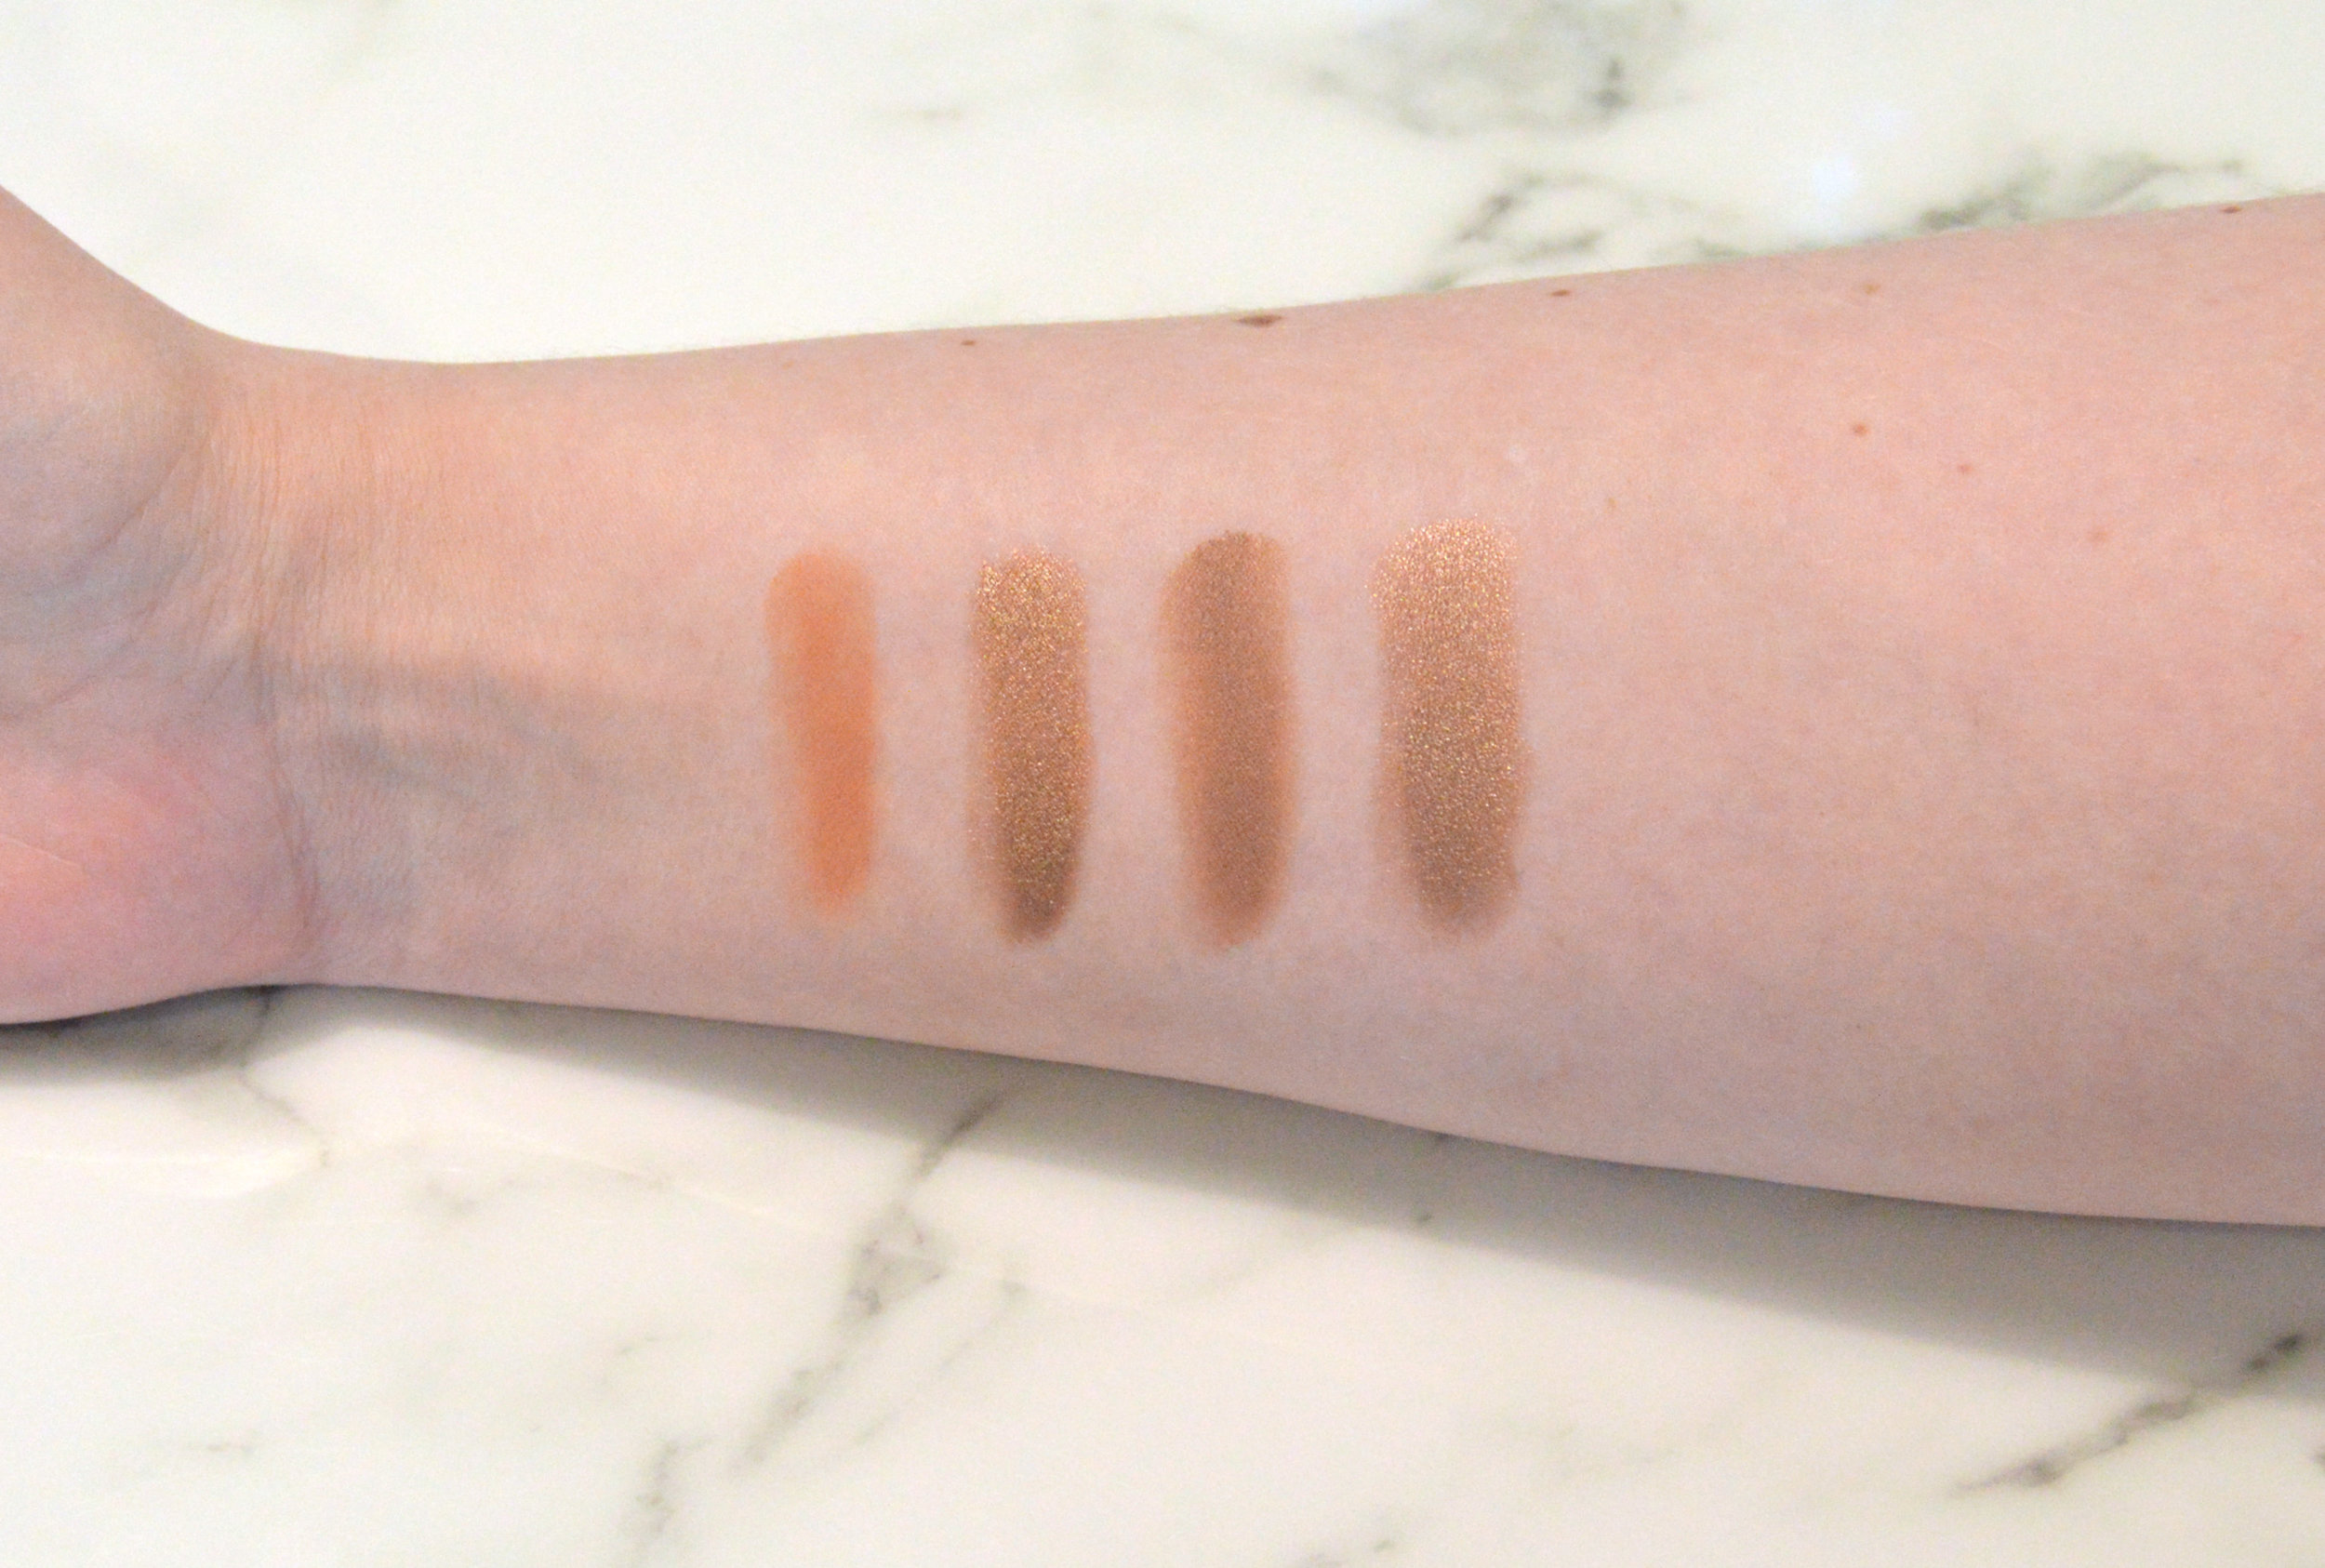 Left to right: Urbanite, High Roller, Creamy Beige (Leather), and Bad to the Bronze